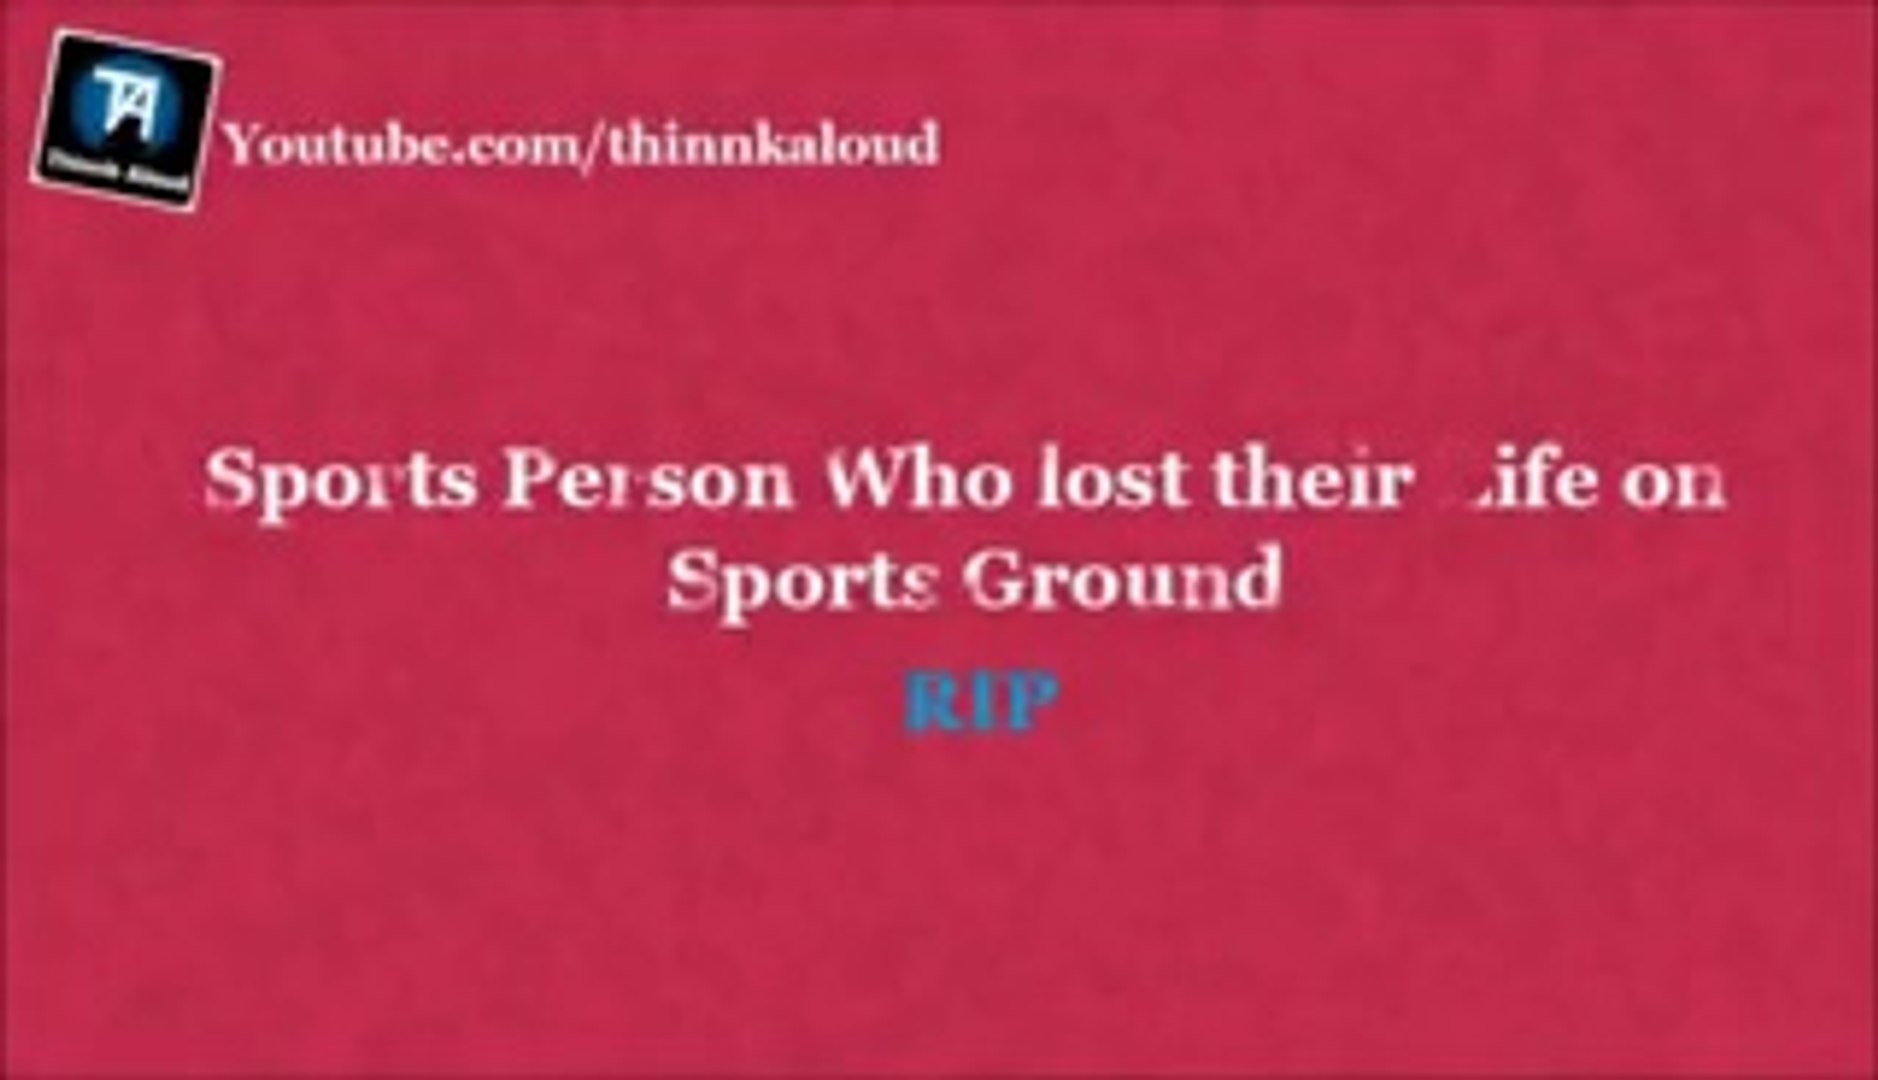 10 Sports Persons Who Died On The Sports Ground - Deaths RIP